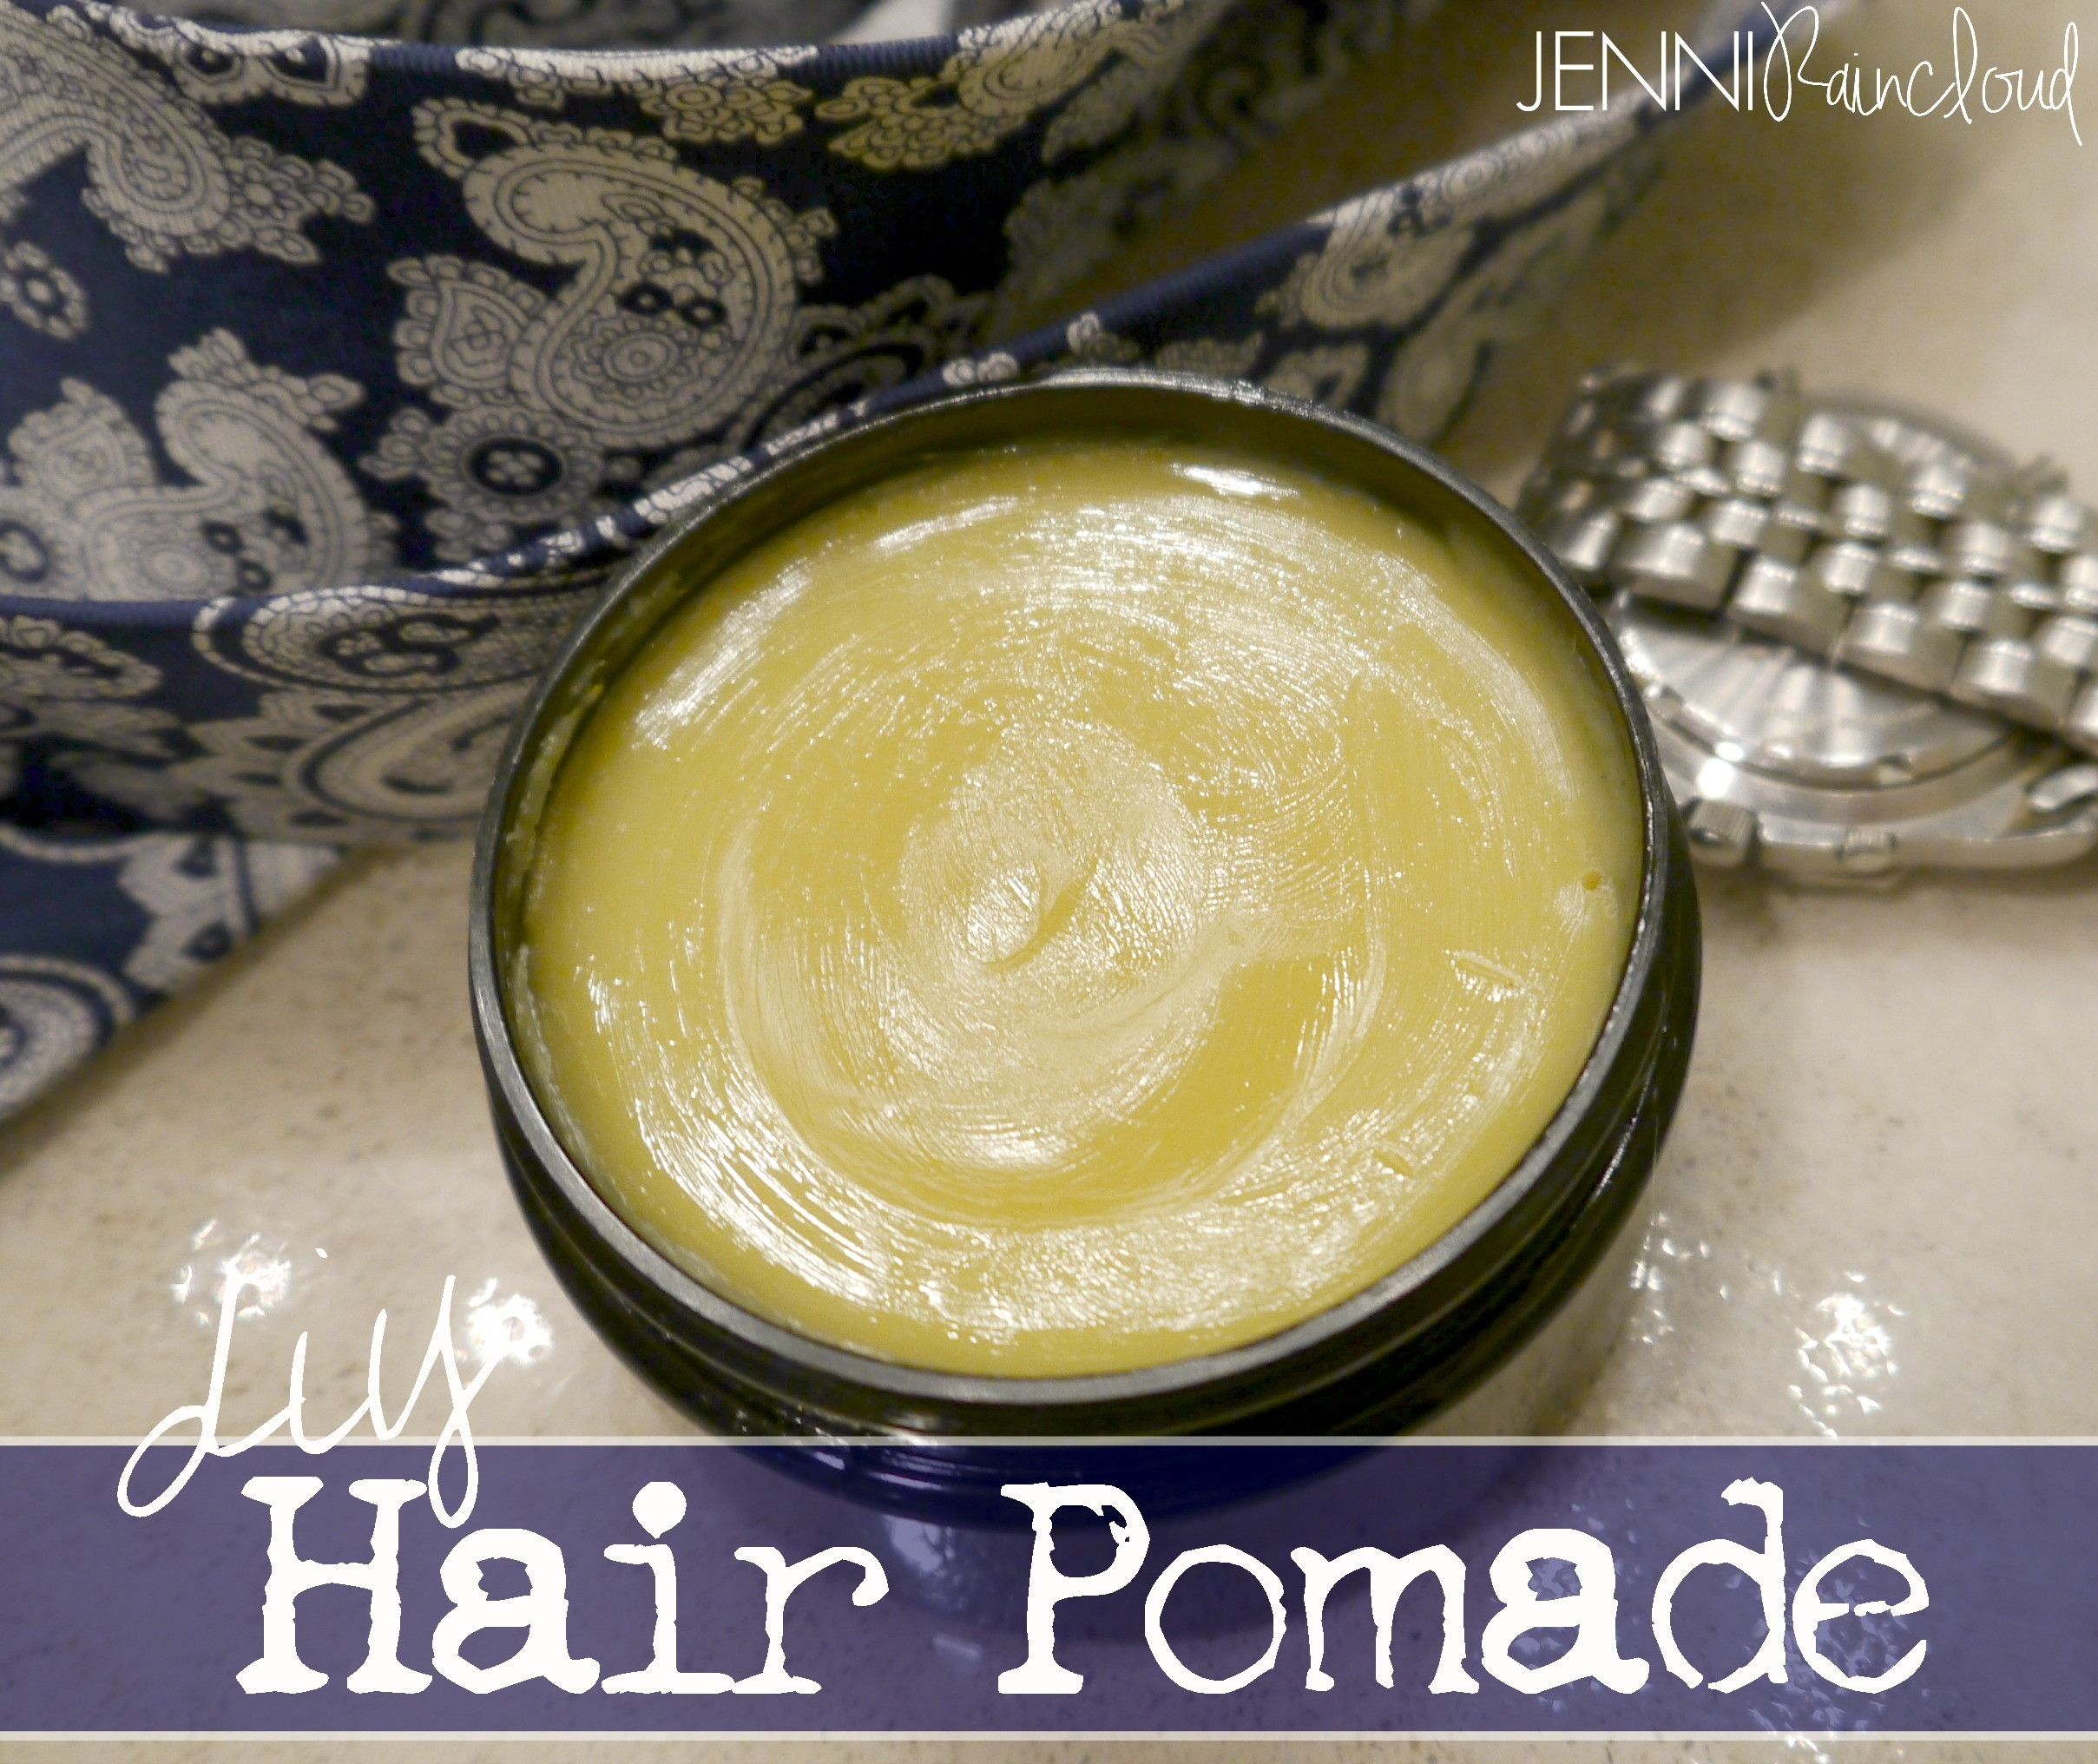 Best ideas about DIY Hair Pomade . Save or Pin Homemade Organic Hair Pomade Jenni Raincloud Now.